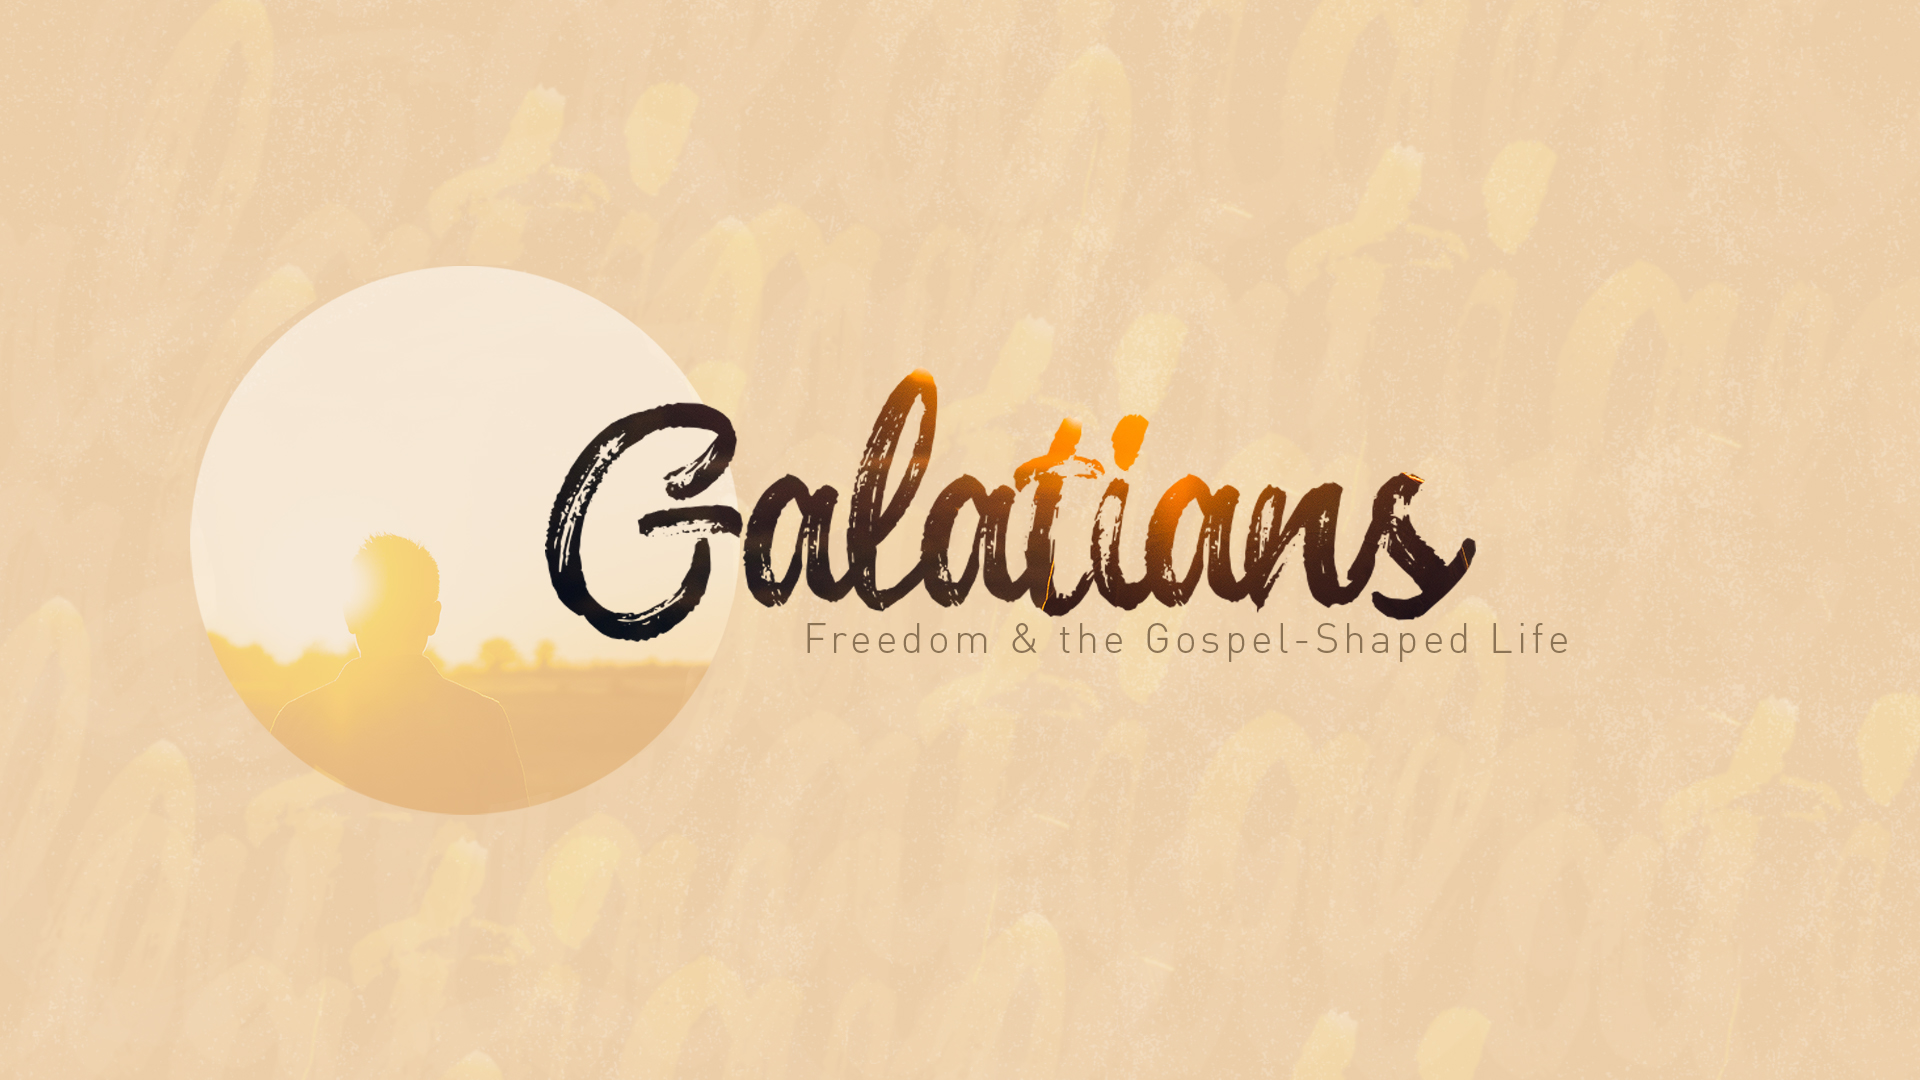 Galatians: Freedom and the Gospel-Shaped Life